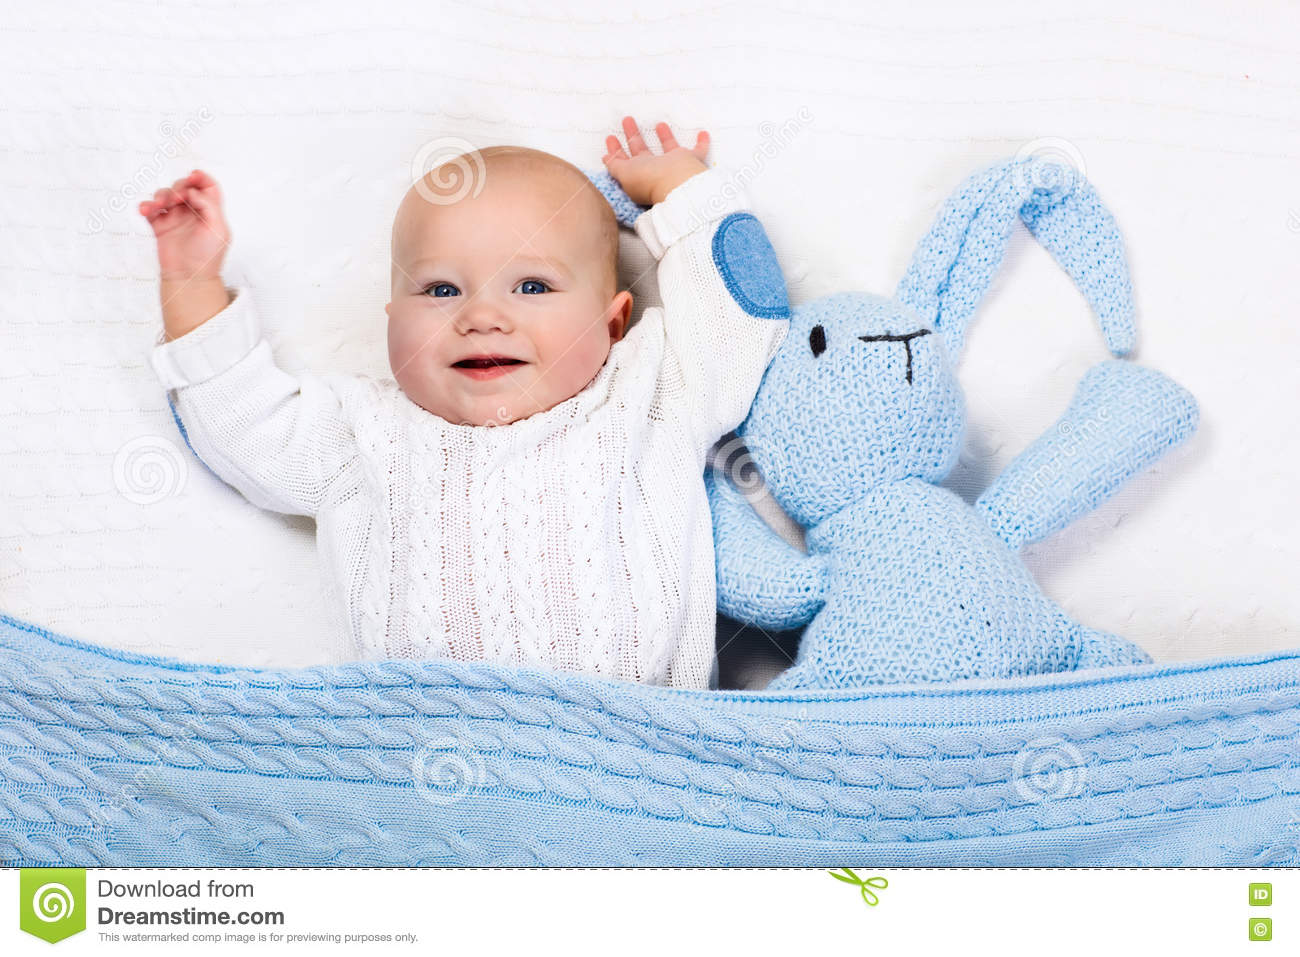 e9d90e3e0703 Baby Boy Playing With Blue Knitted Bunny Toy Stock Image - Image of ...